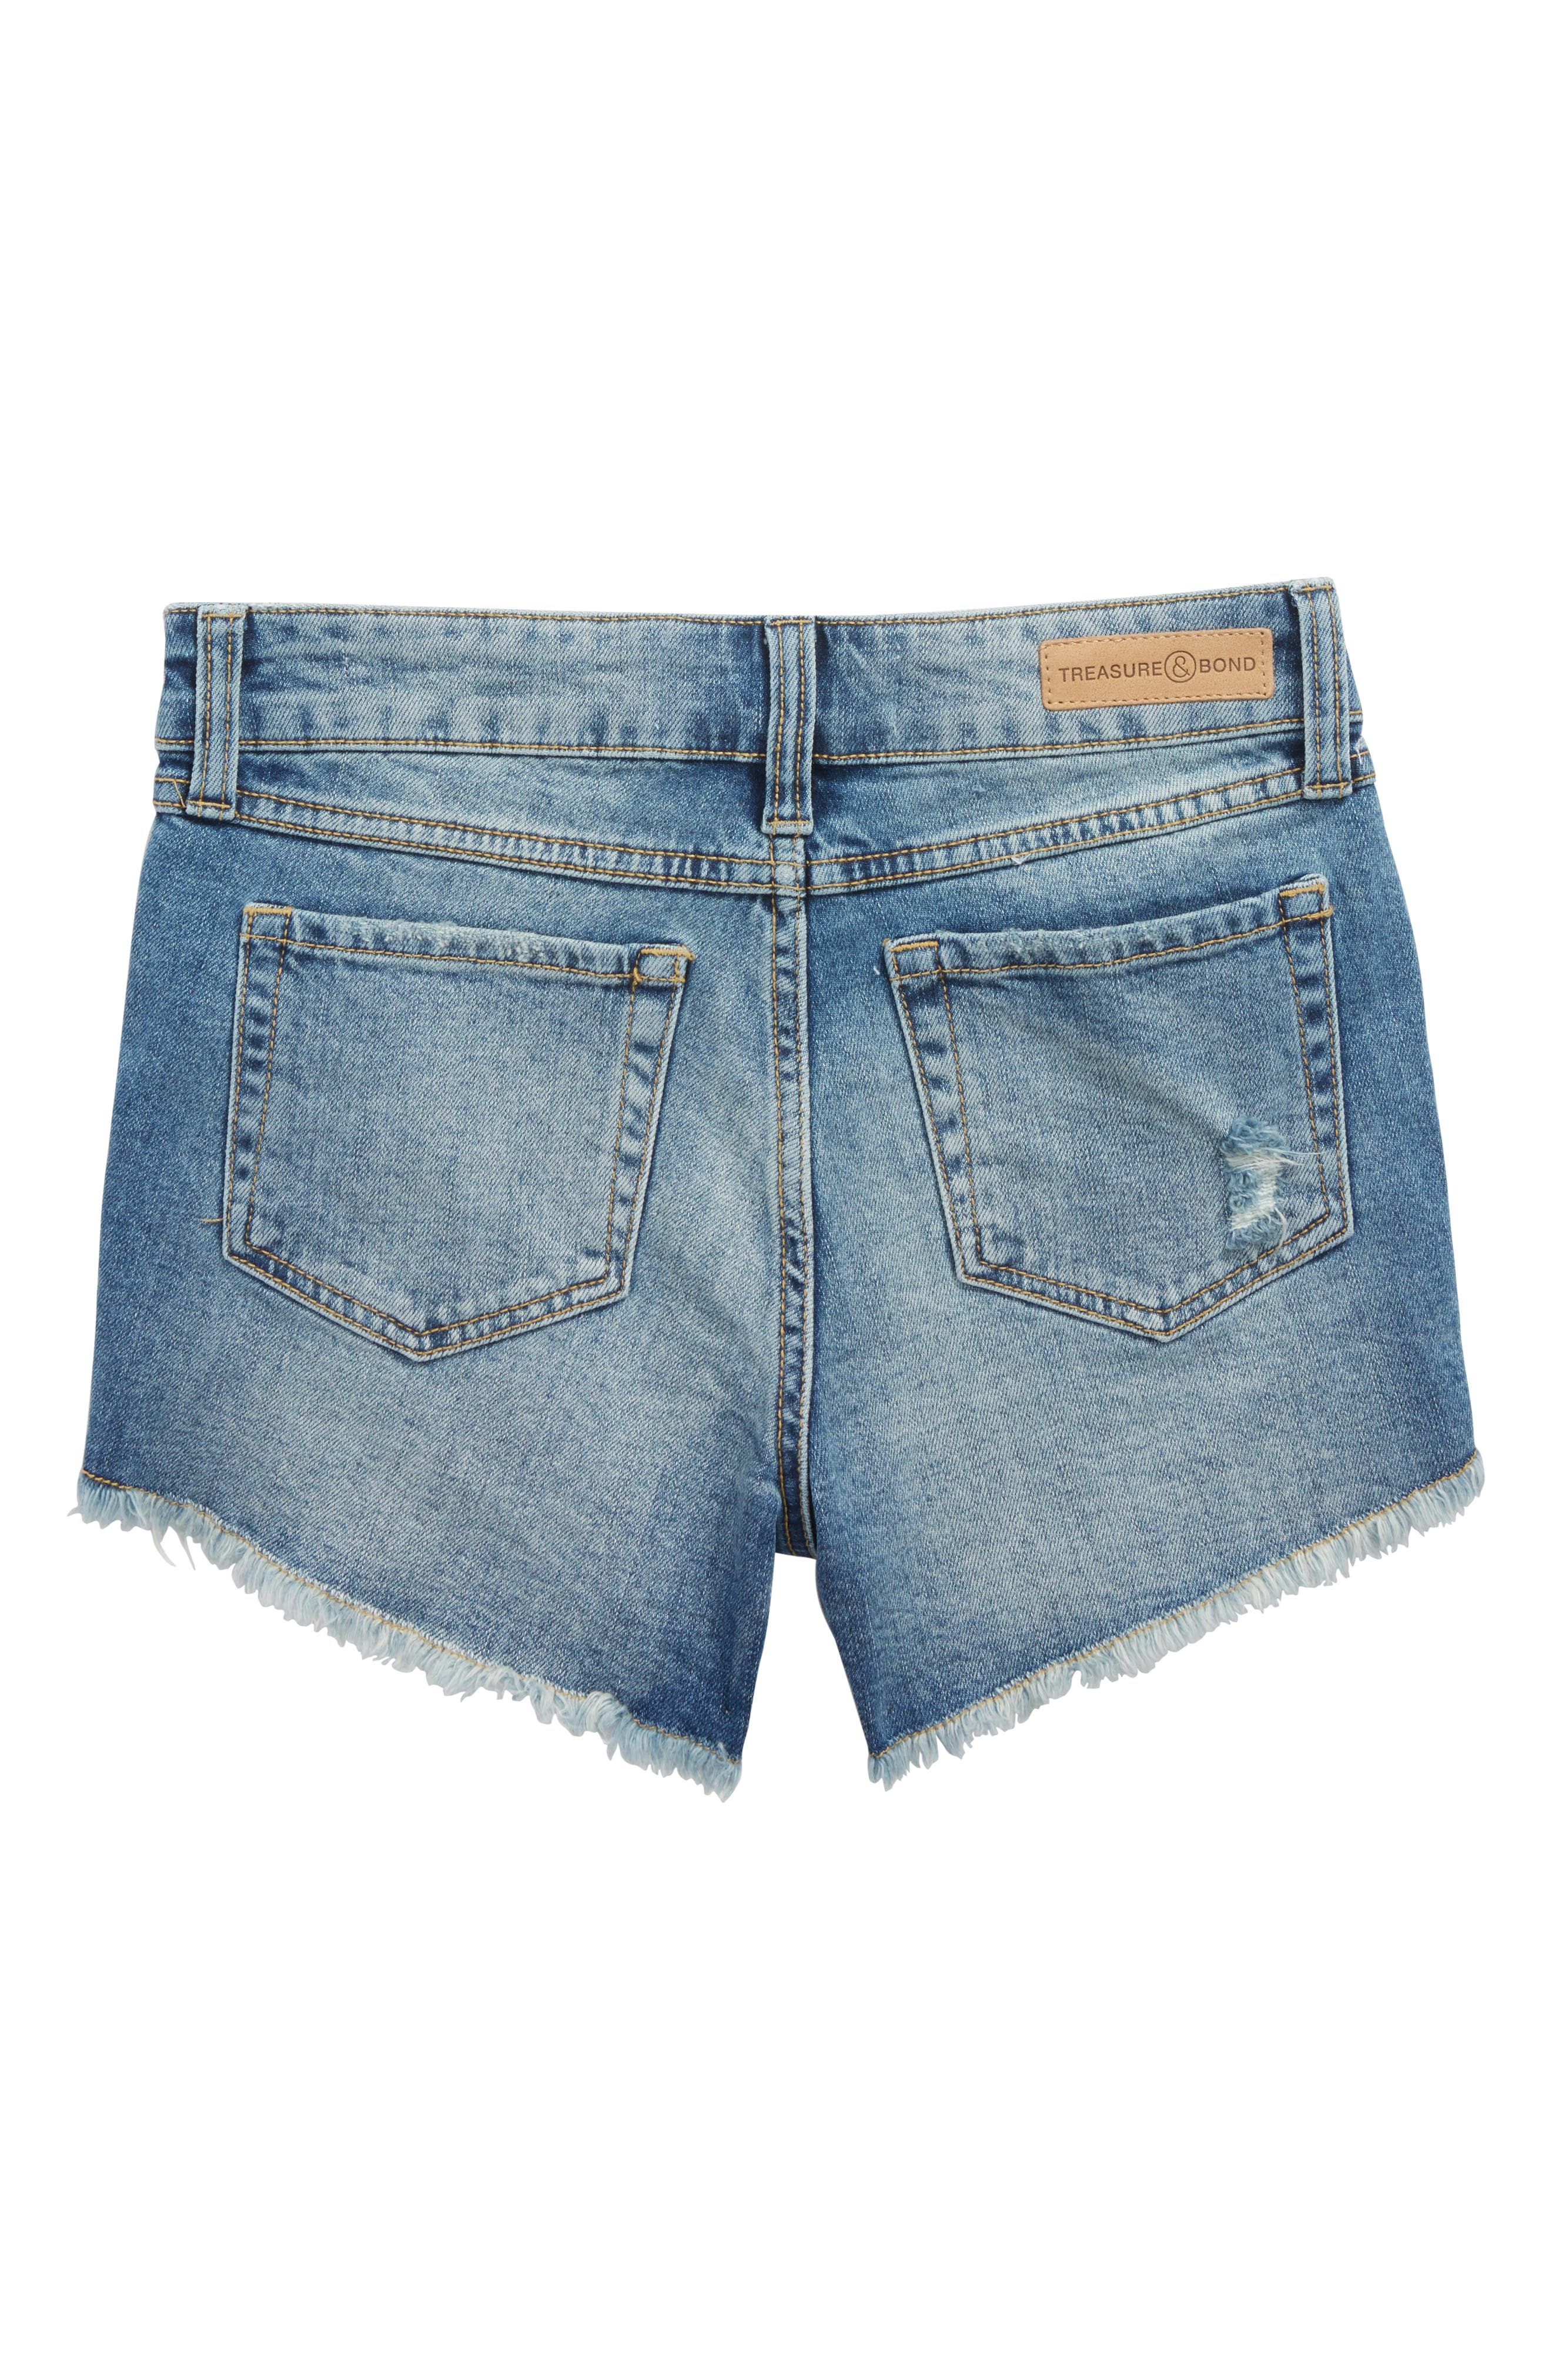 Distressed Cutoff Denim Shorts,                             Alternate thumbnail 2, color,                             Old School Wash